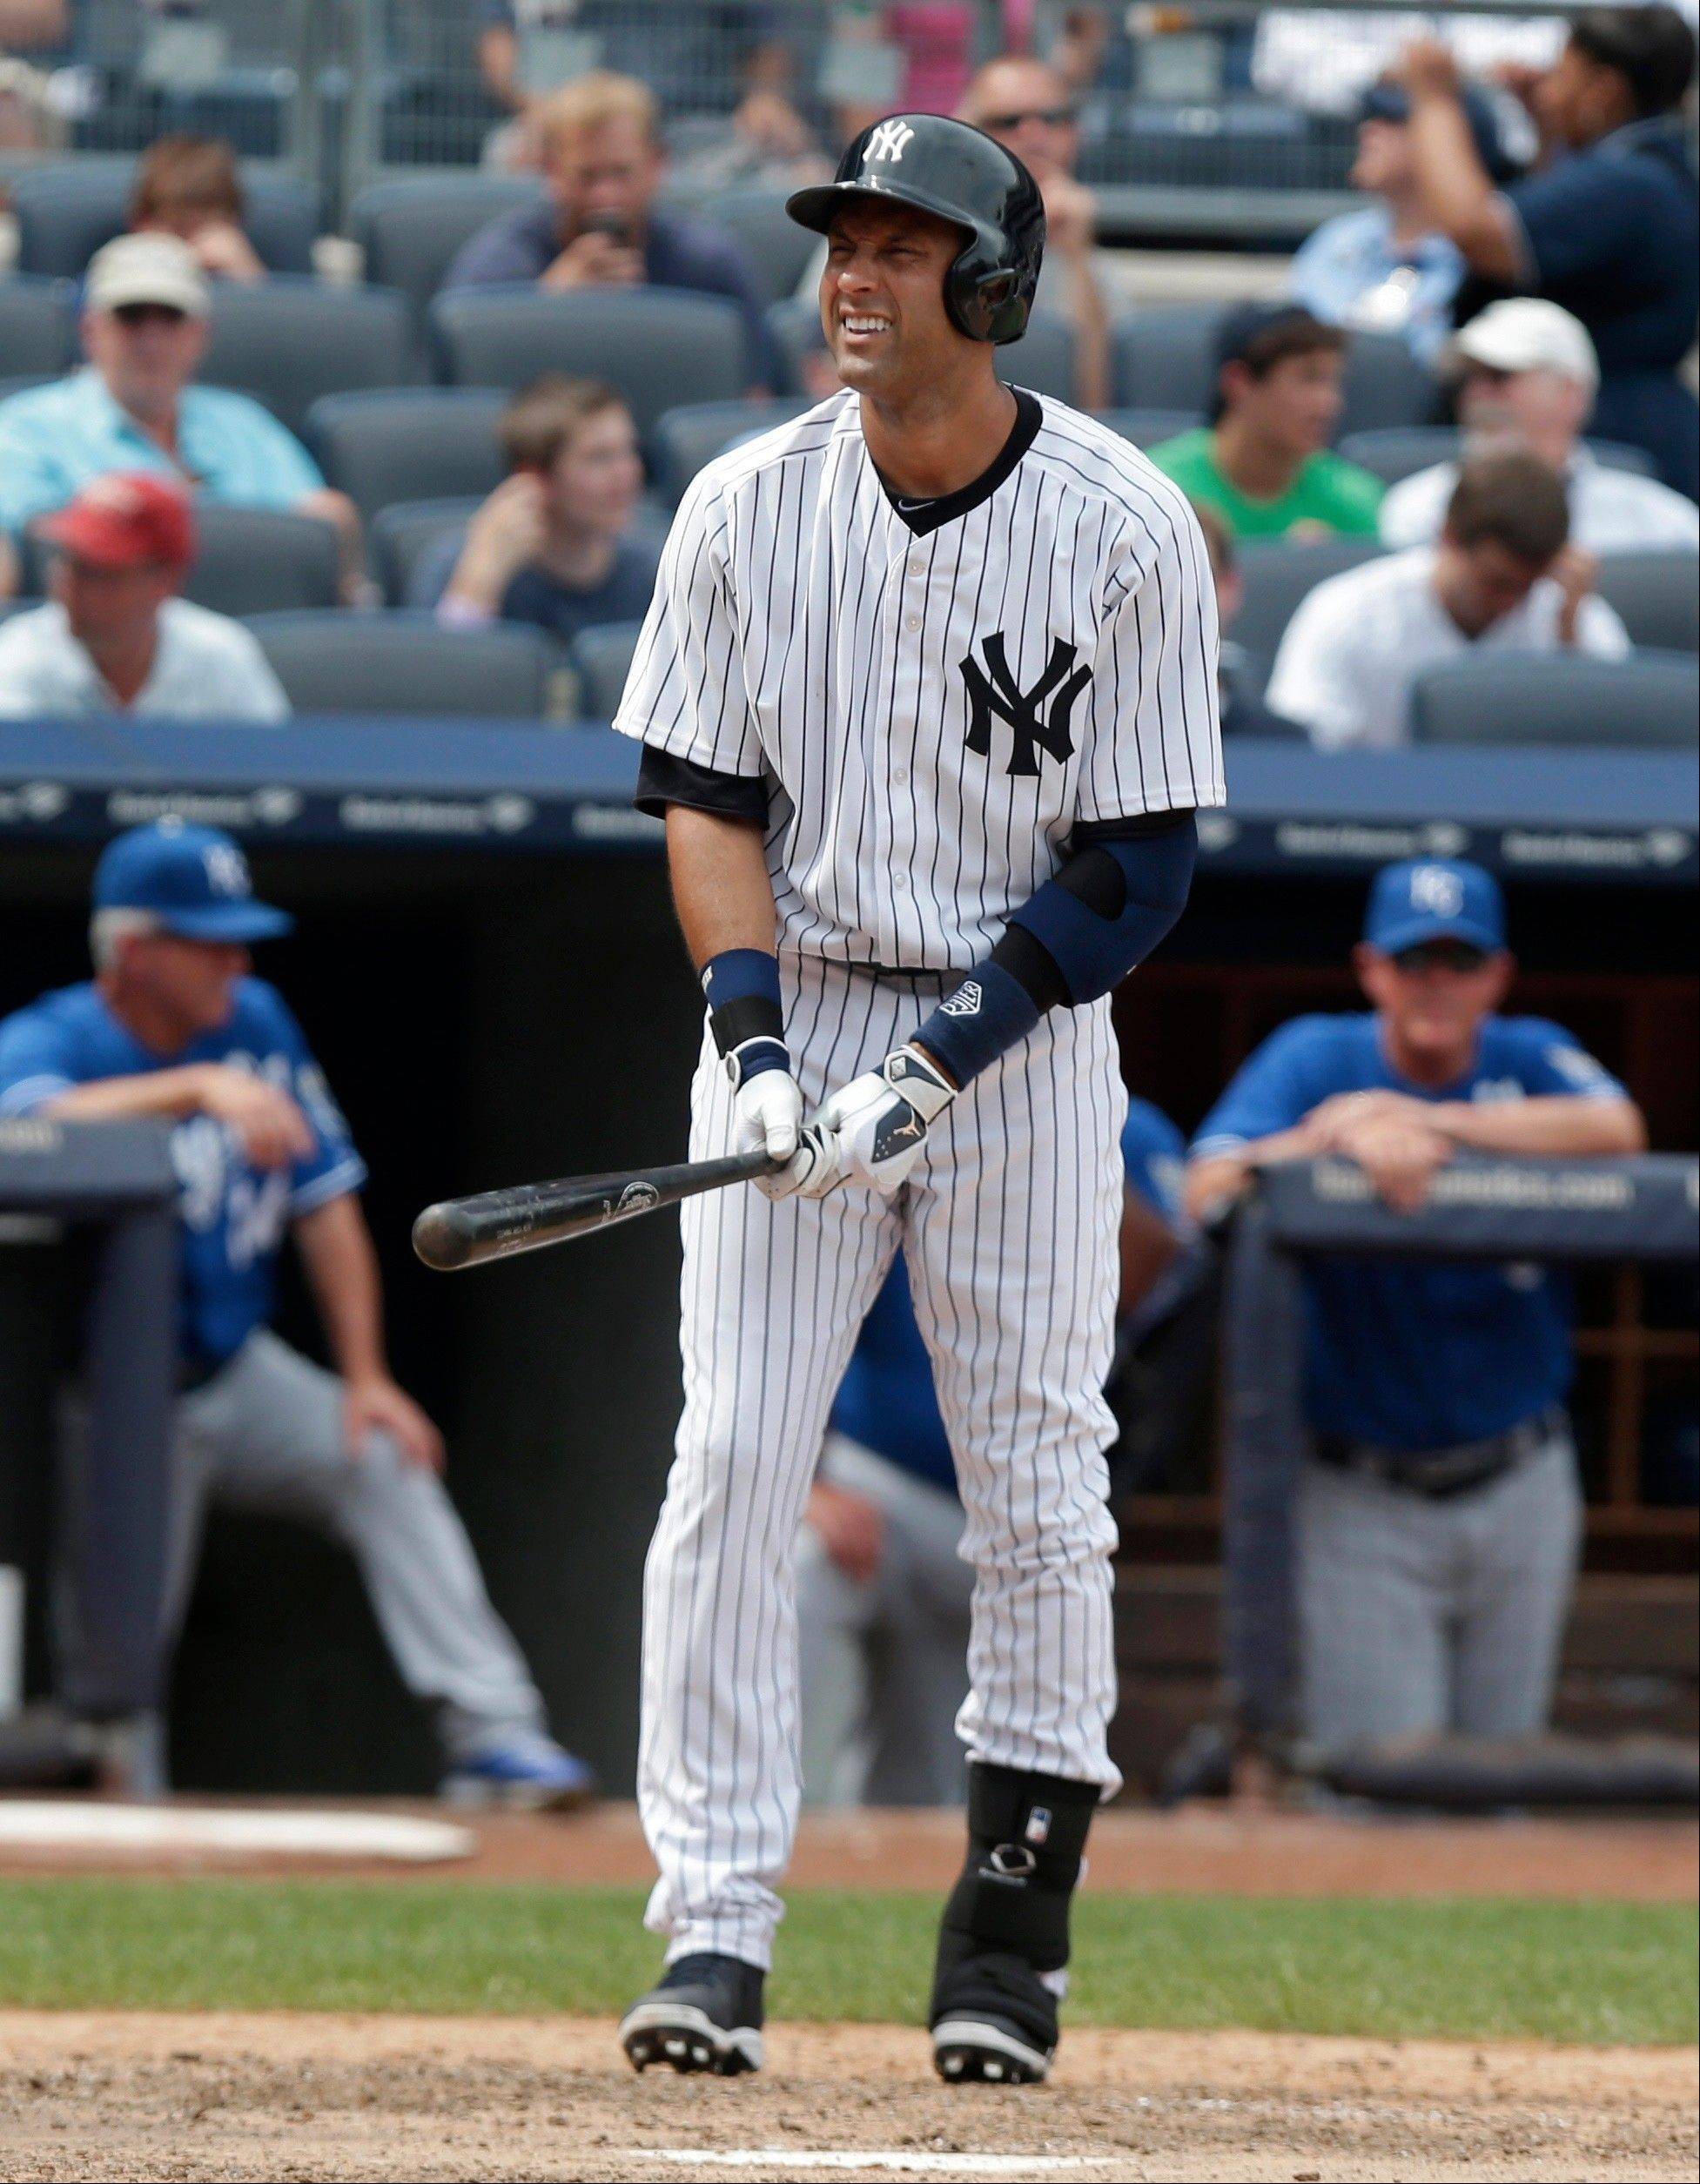 New York Yankees' Derek Jeter reacts during a sixth-inning at-bat in a baseball game against the Kansas City Royals at Yankee Stadium on Thursday, July 11, 2013, in New York. The Yankees beat the Royals 8-4. Jeter left the game early with a tight right quadriceps.